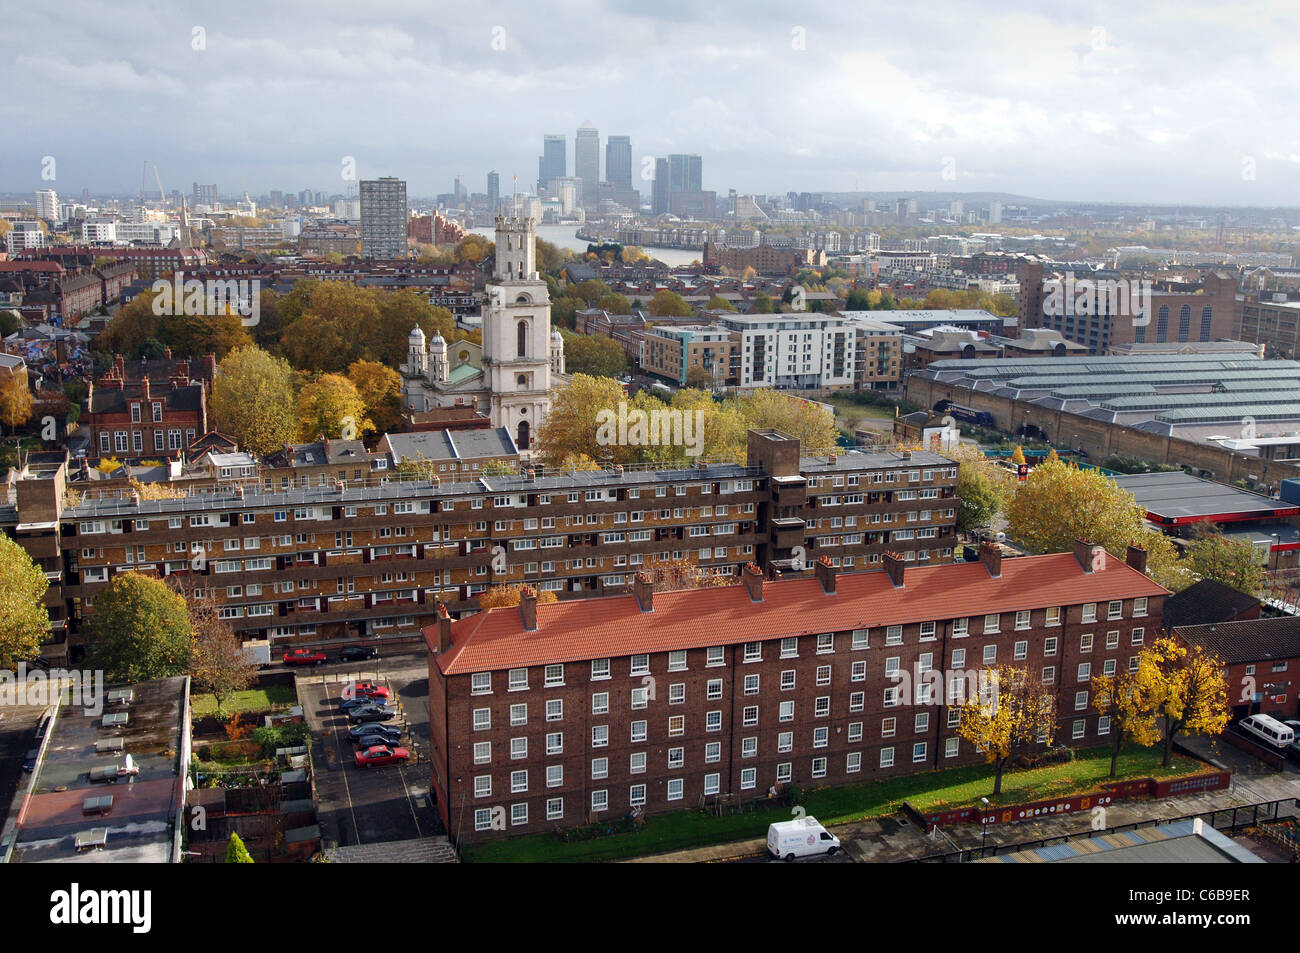 Ariel view of St Georges' Estate in the East End of London - Stock Image